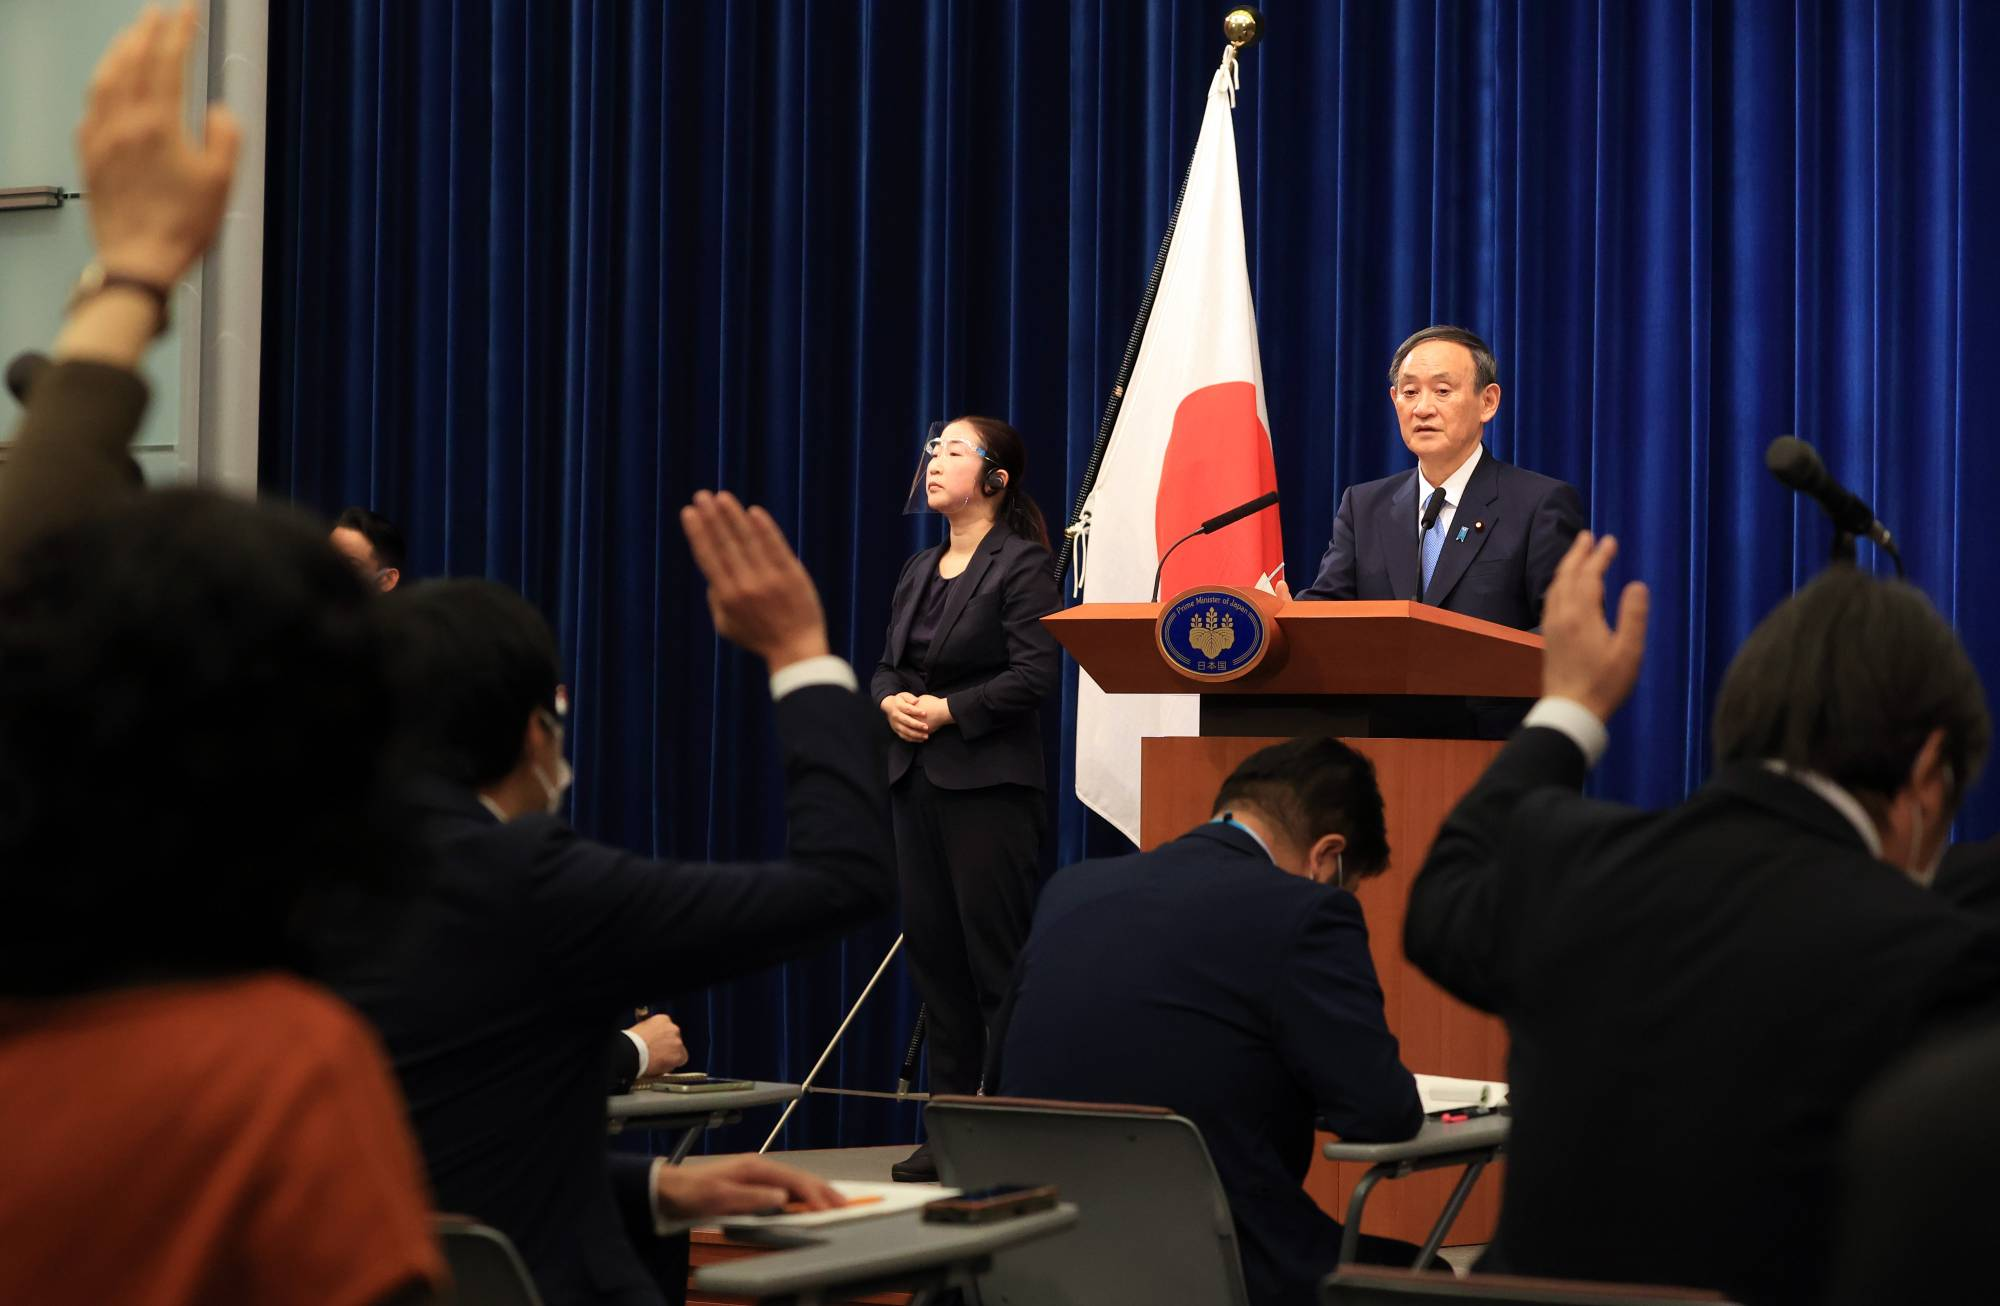 Journalists raise their hands to ask questions of Prime Minister Yoshihide Suga during a news conference at the Prime Minister's Office in Tokyo on Monday. | BLOOMBERG